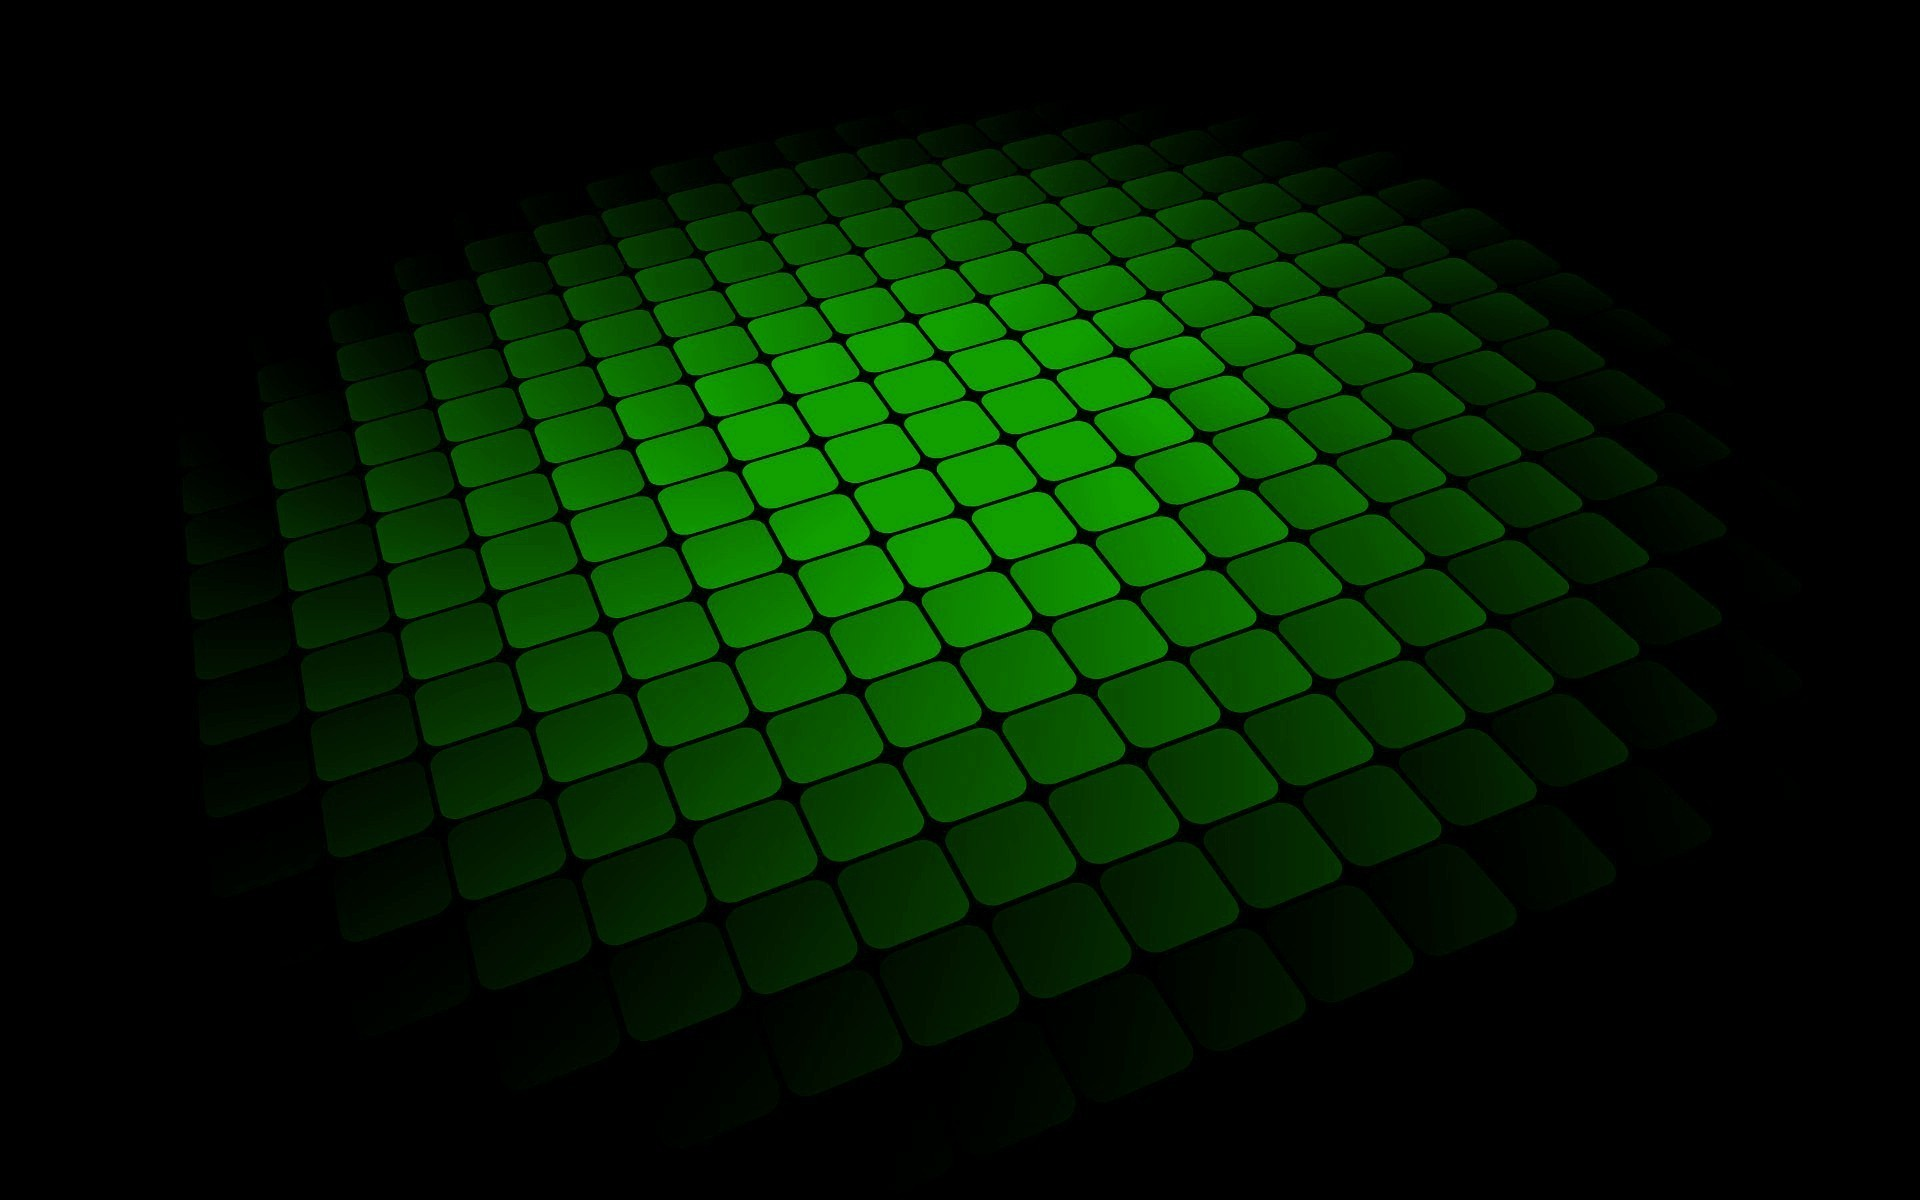 1920x1200 Green And Black Abstract Wallpaper 37 Widescreen Wallpaper